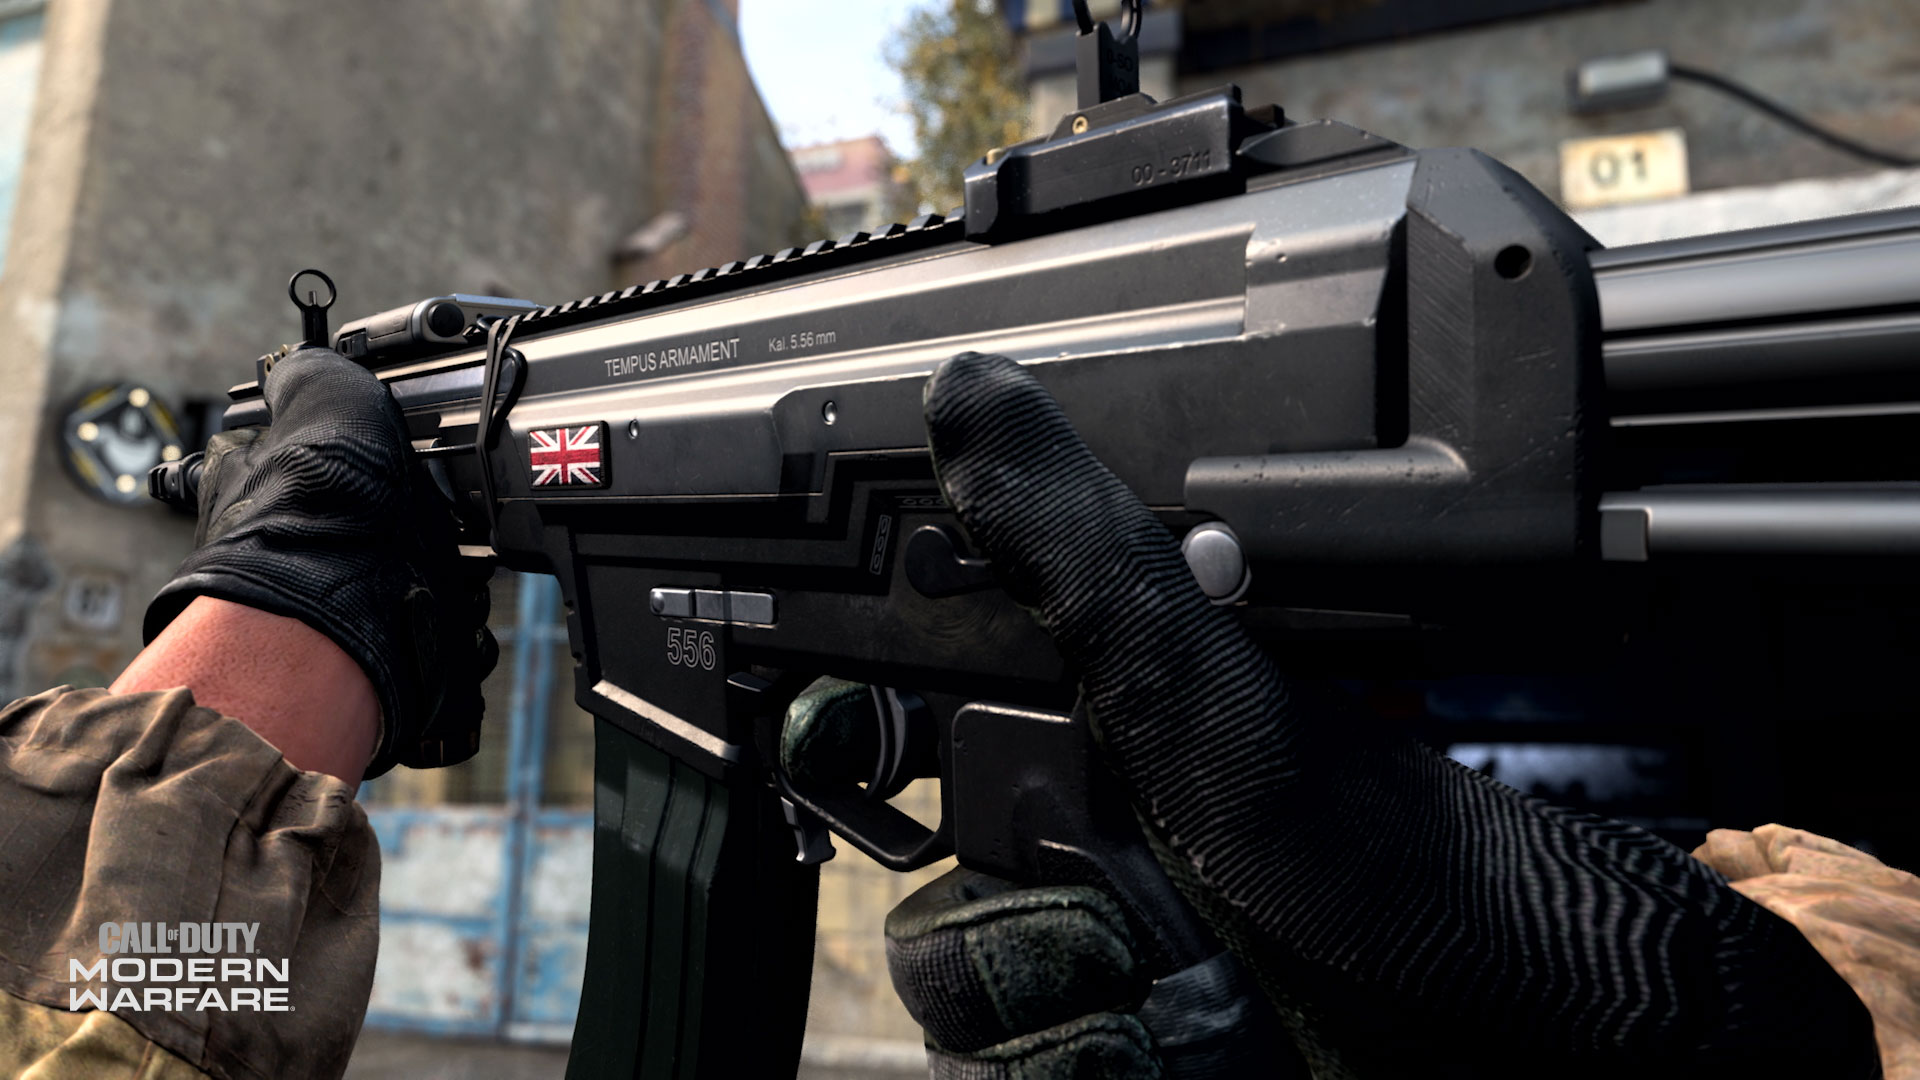 Call of Duty: Modern Warfare Weapons List, Stats, Gunsmith and Complete Gun Guide! 2